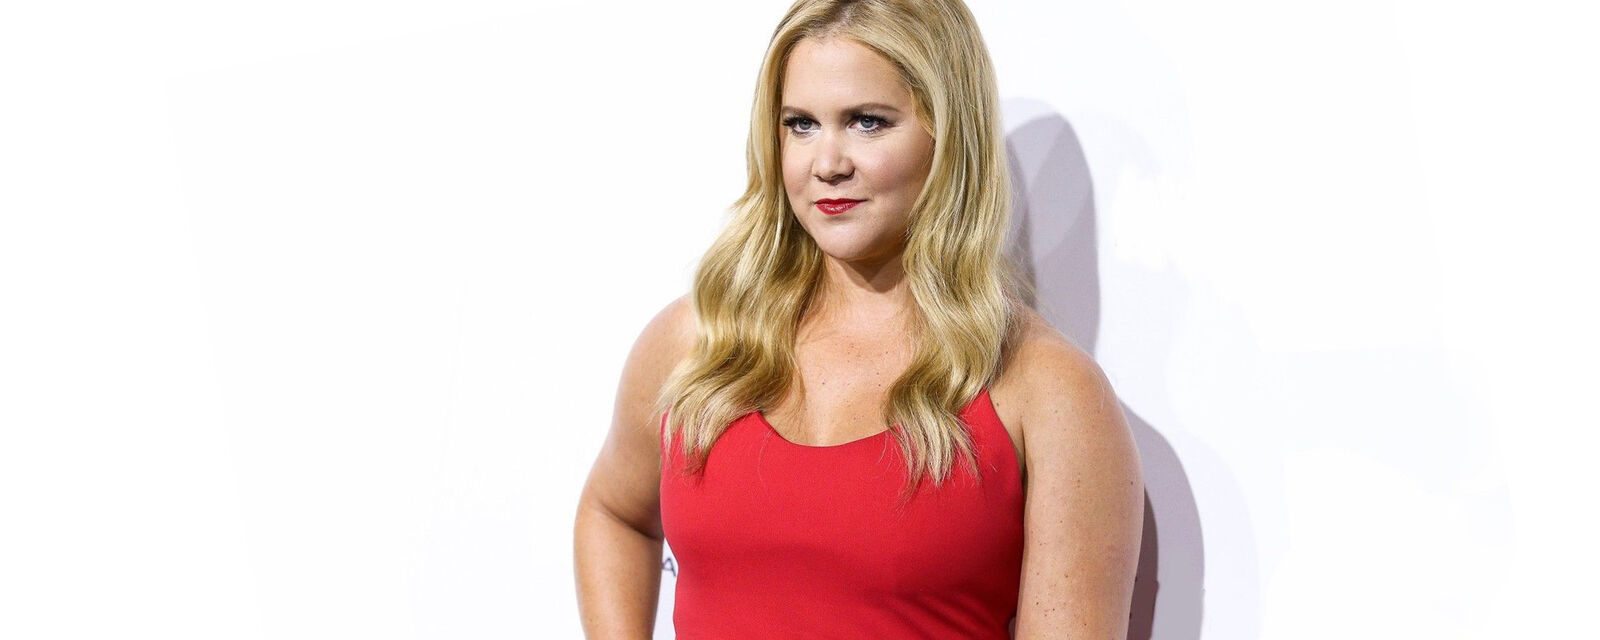 Amy Schumer Tickets (Rescheduled from September 20, 2018)